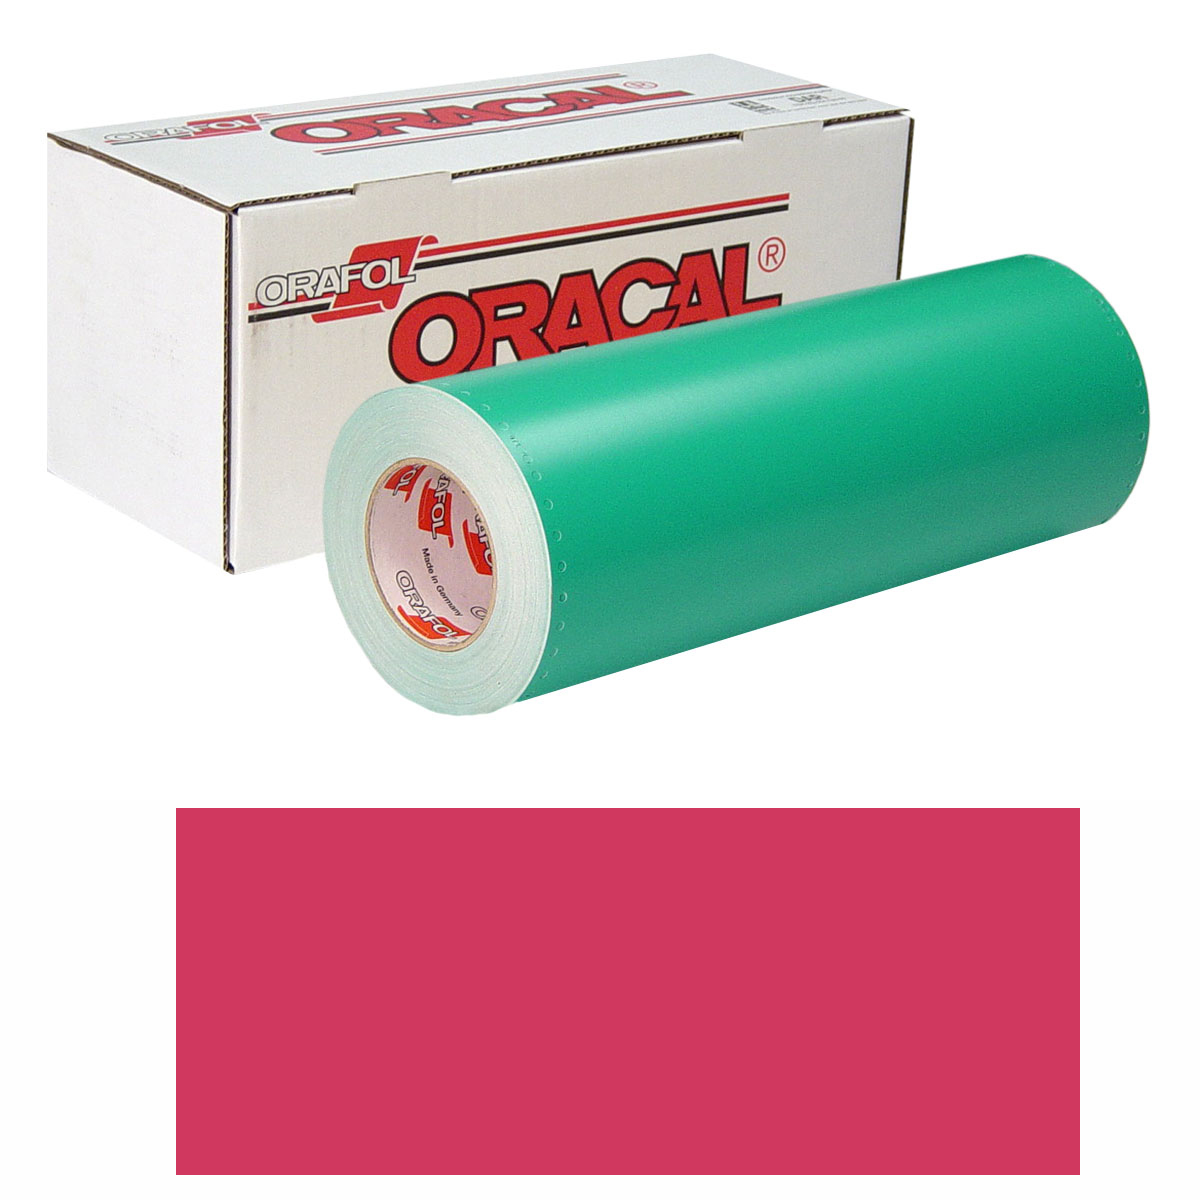 ORACAL 8500 Unp 24In X 10Yd 032 Light Red